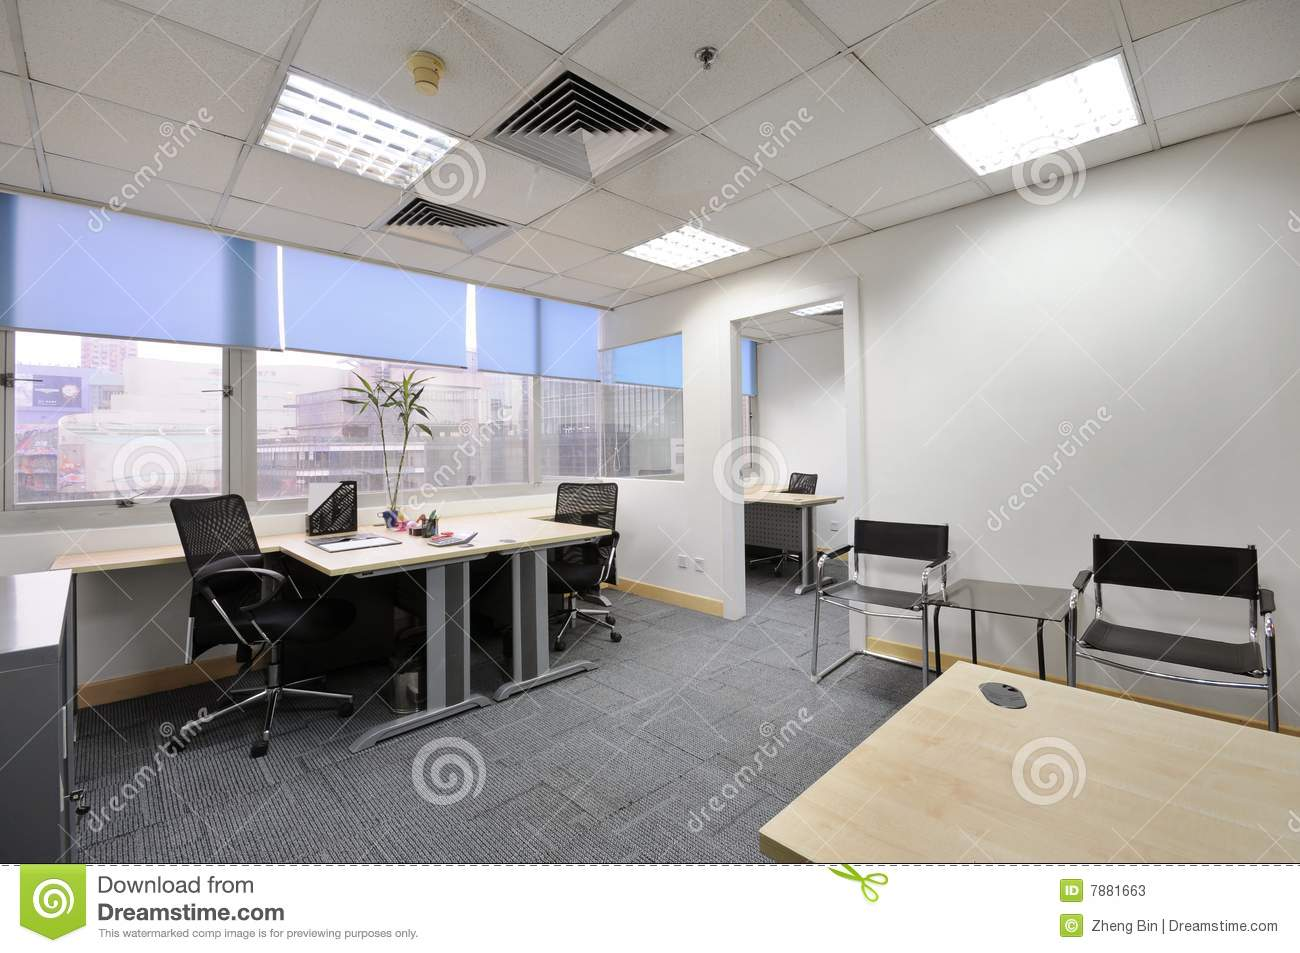 3d Wallpaper For Living Room Wall Office Room Stock Photos Image 7881663